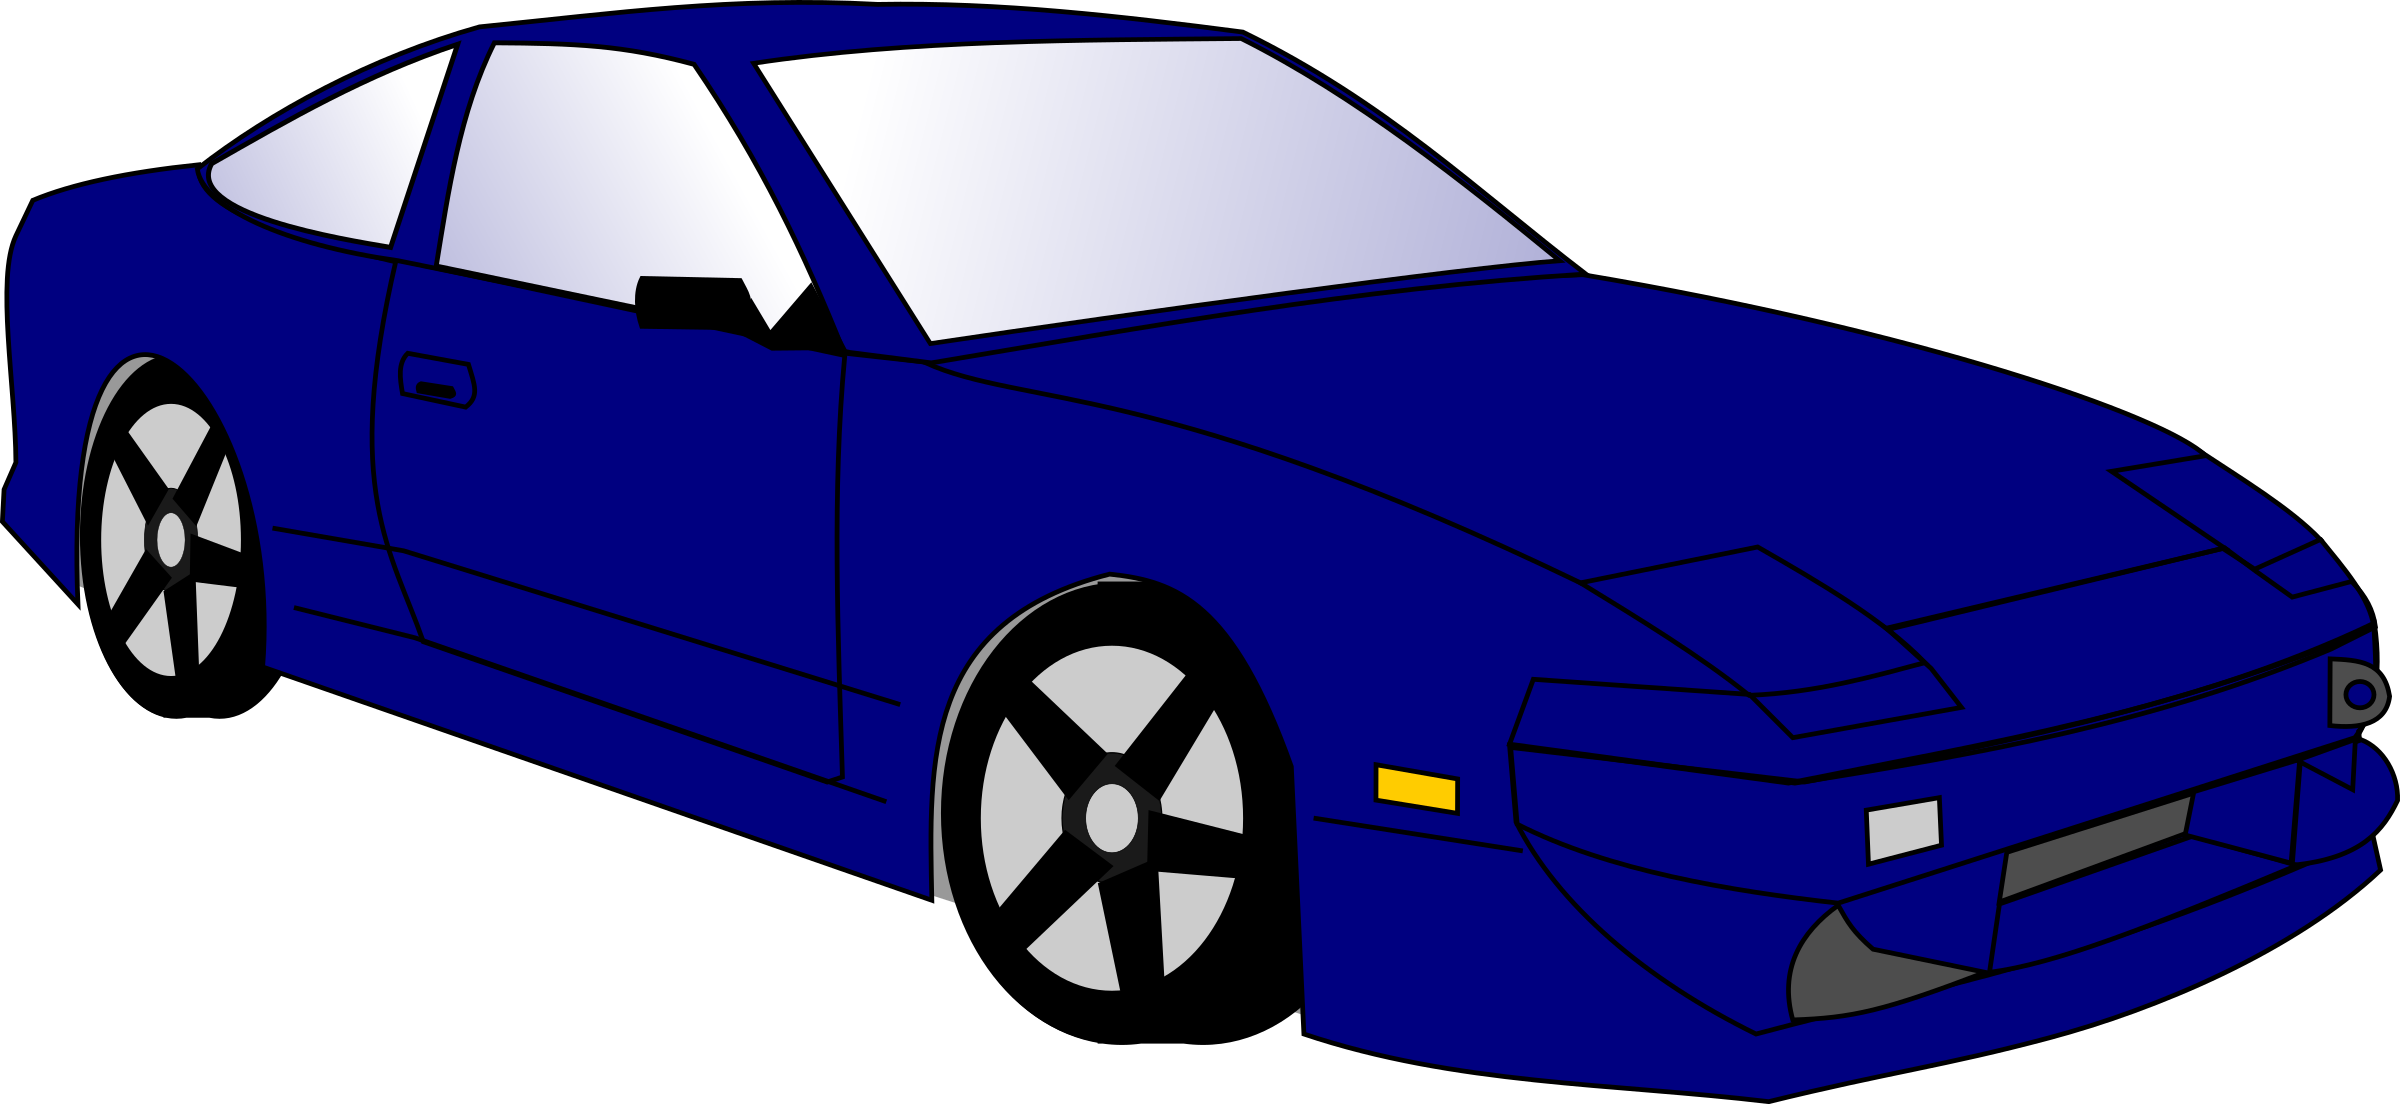 Car driving away clipart clipart freeuse stock Blue Car Cliparts | Free download best Blue Car Cliparts on ... clipart freeuse stock